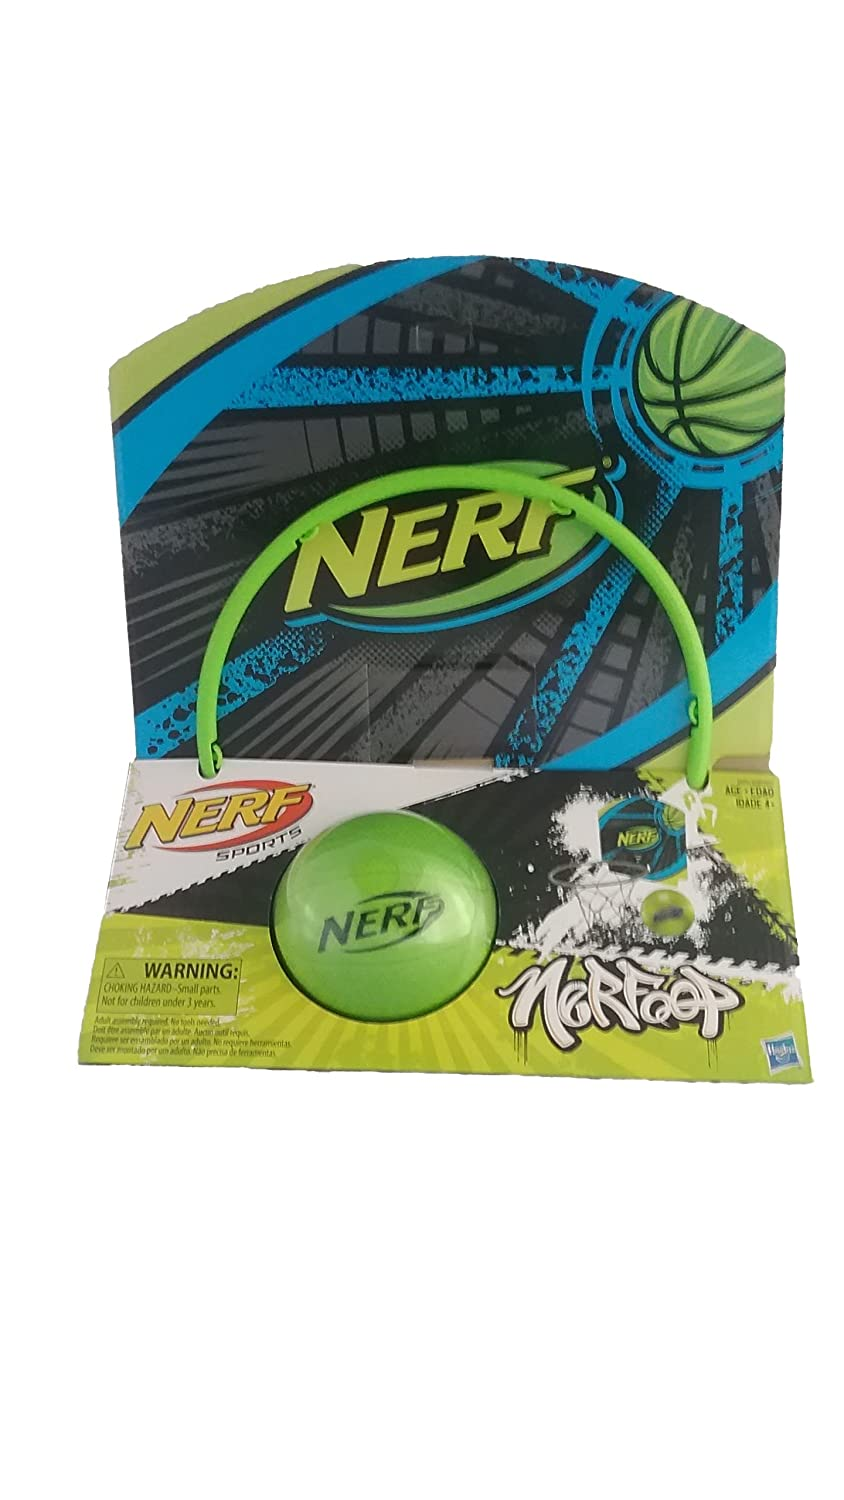 Your Son Will Get A Lot Of Fun And Use Out This Cool Toy Basketball Hoop Be Nice Gift For An Older Boy Who Loves Sports